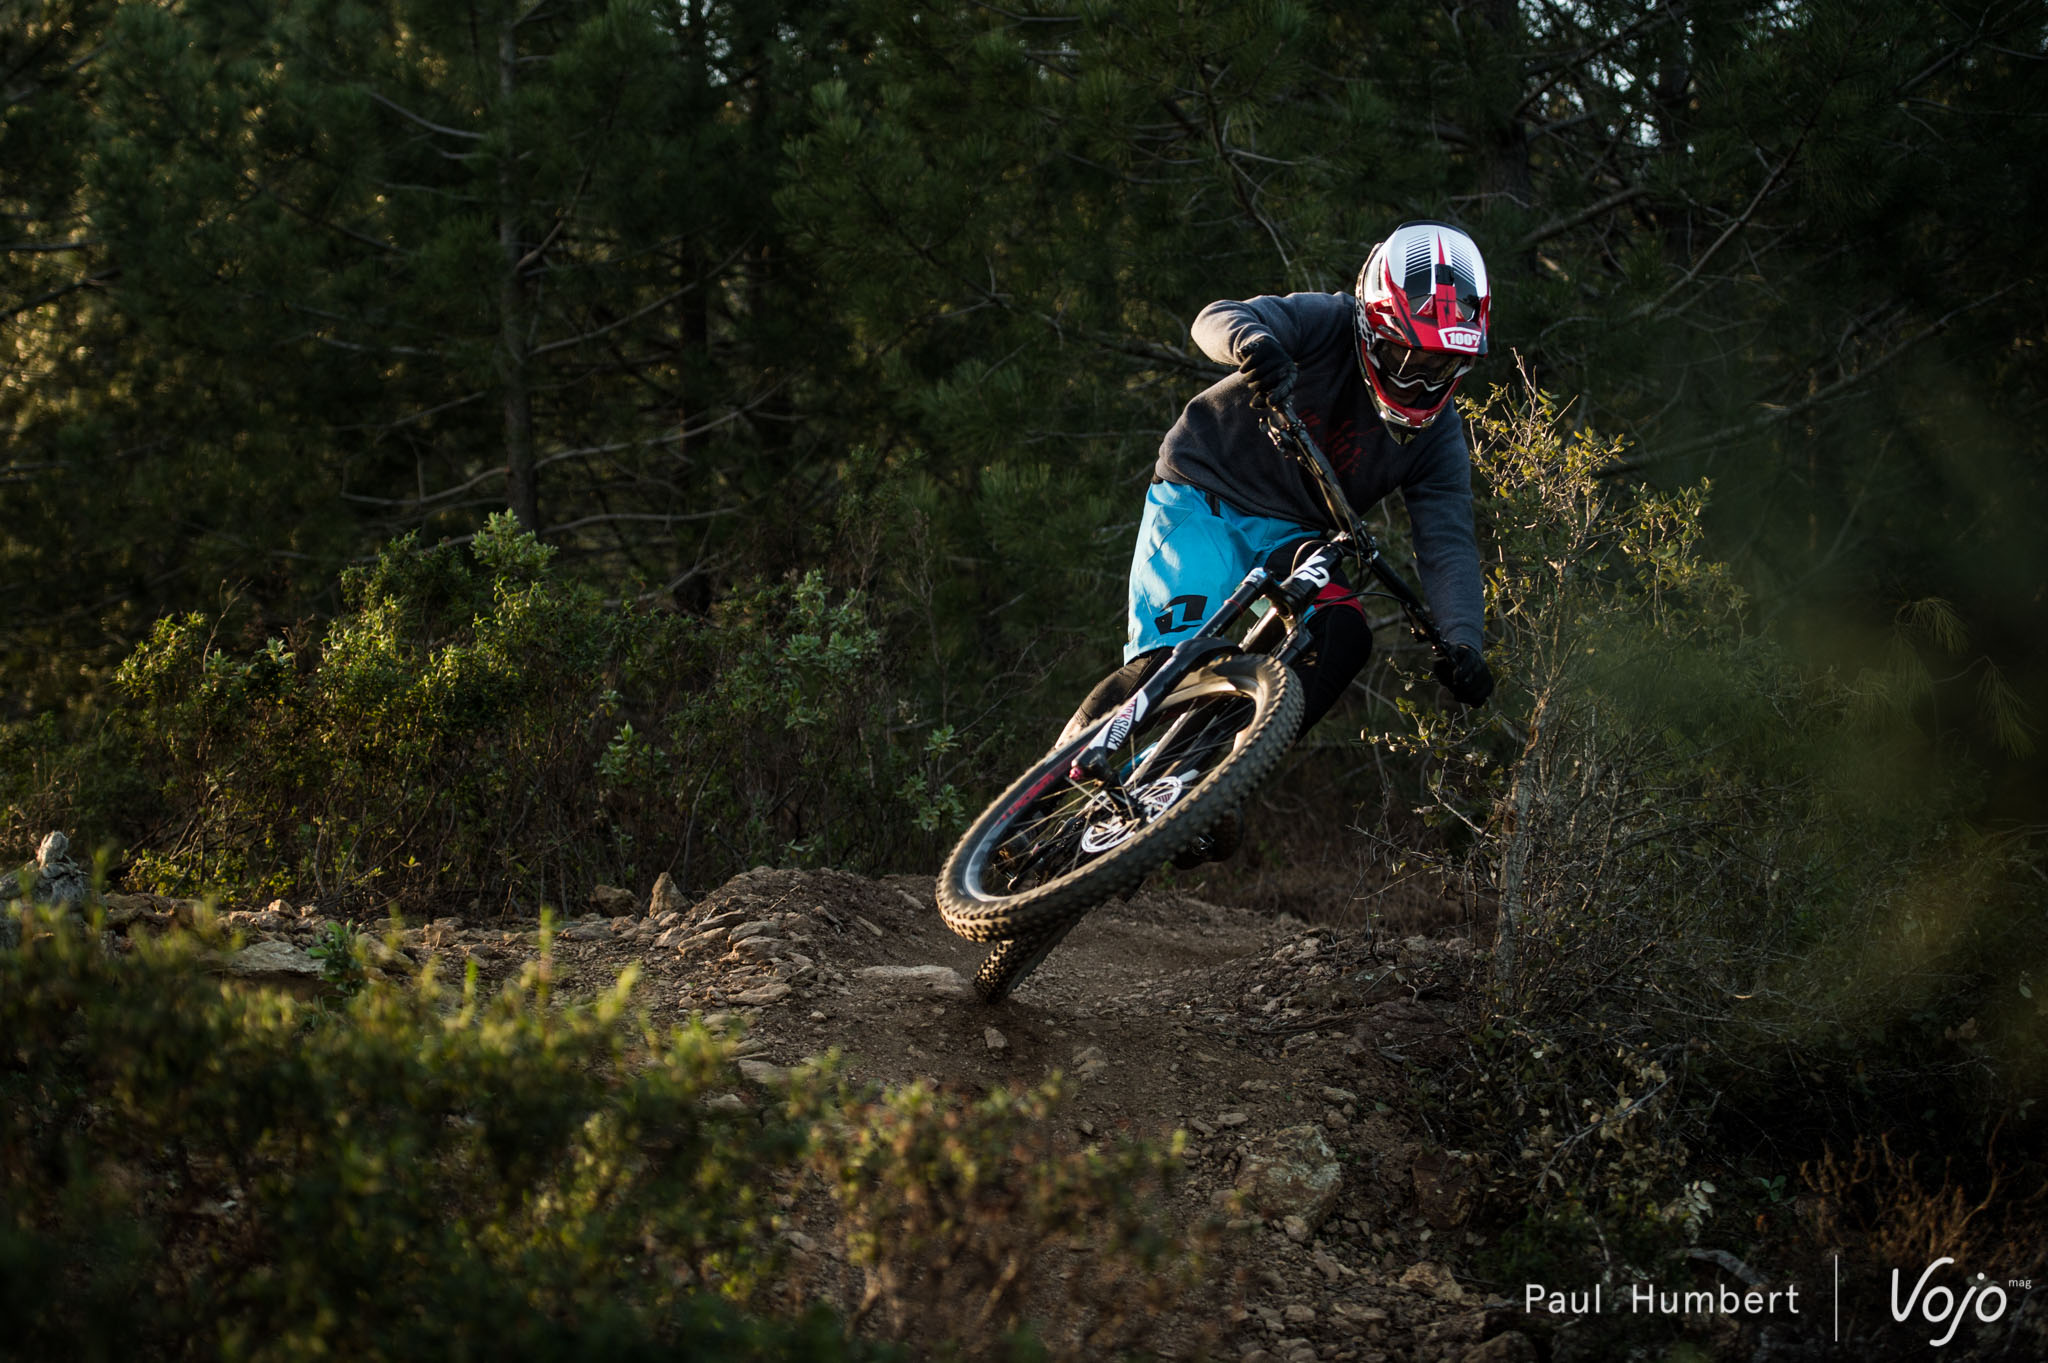 dailly-gallean-azur-bike-park-2017-vojo-paul-humbert-7